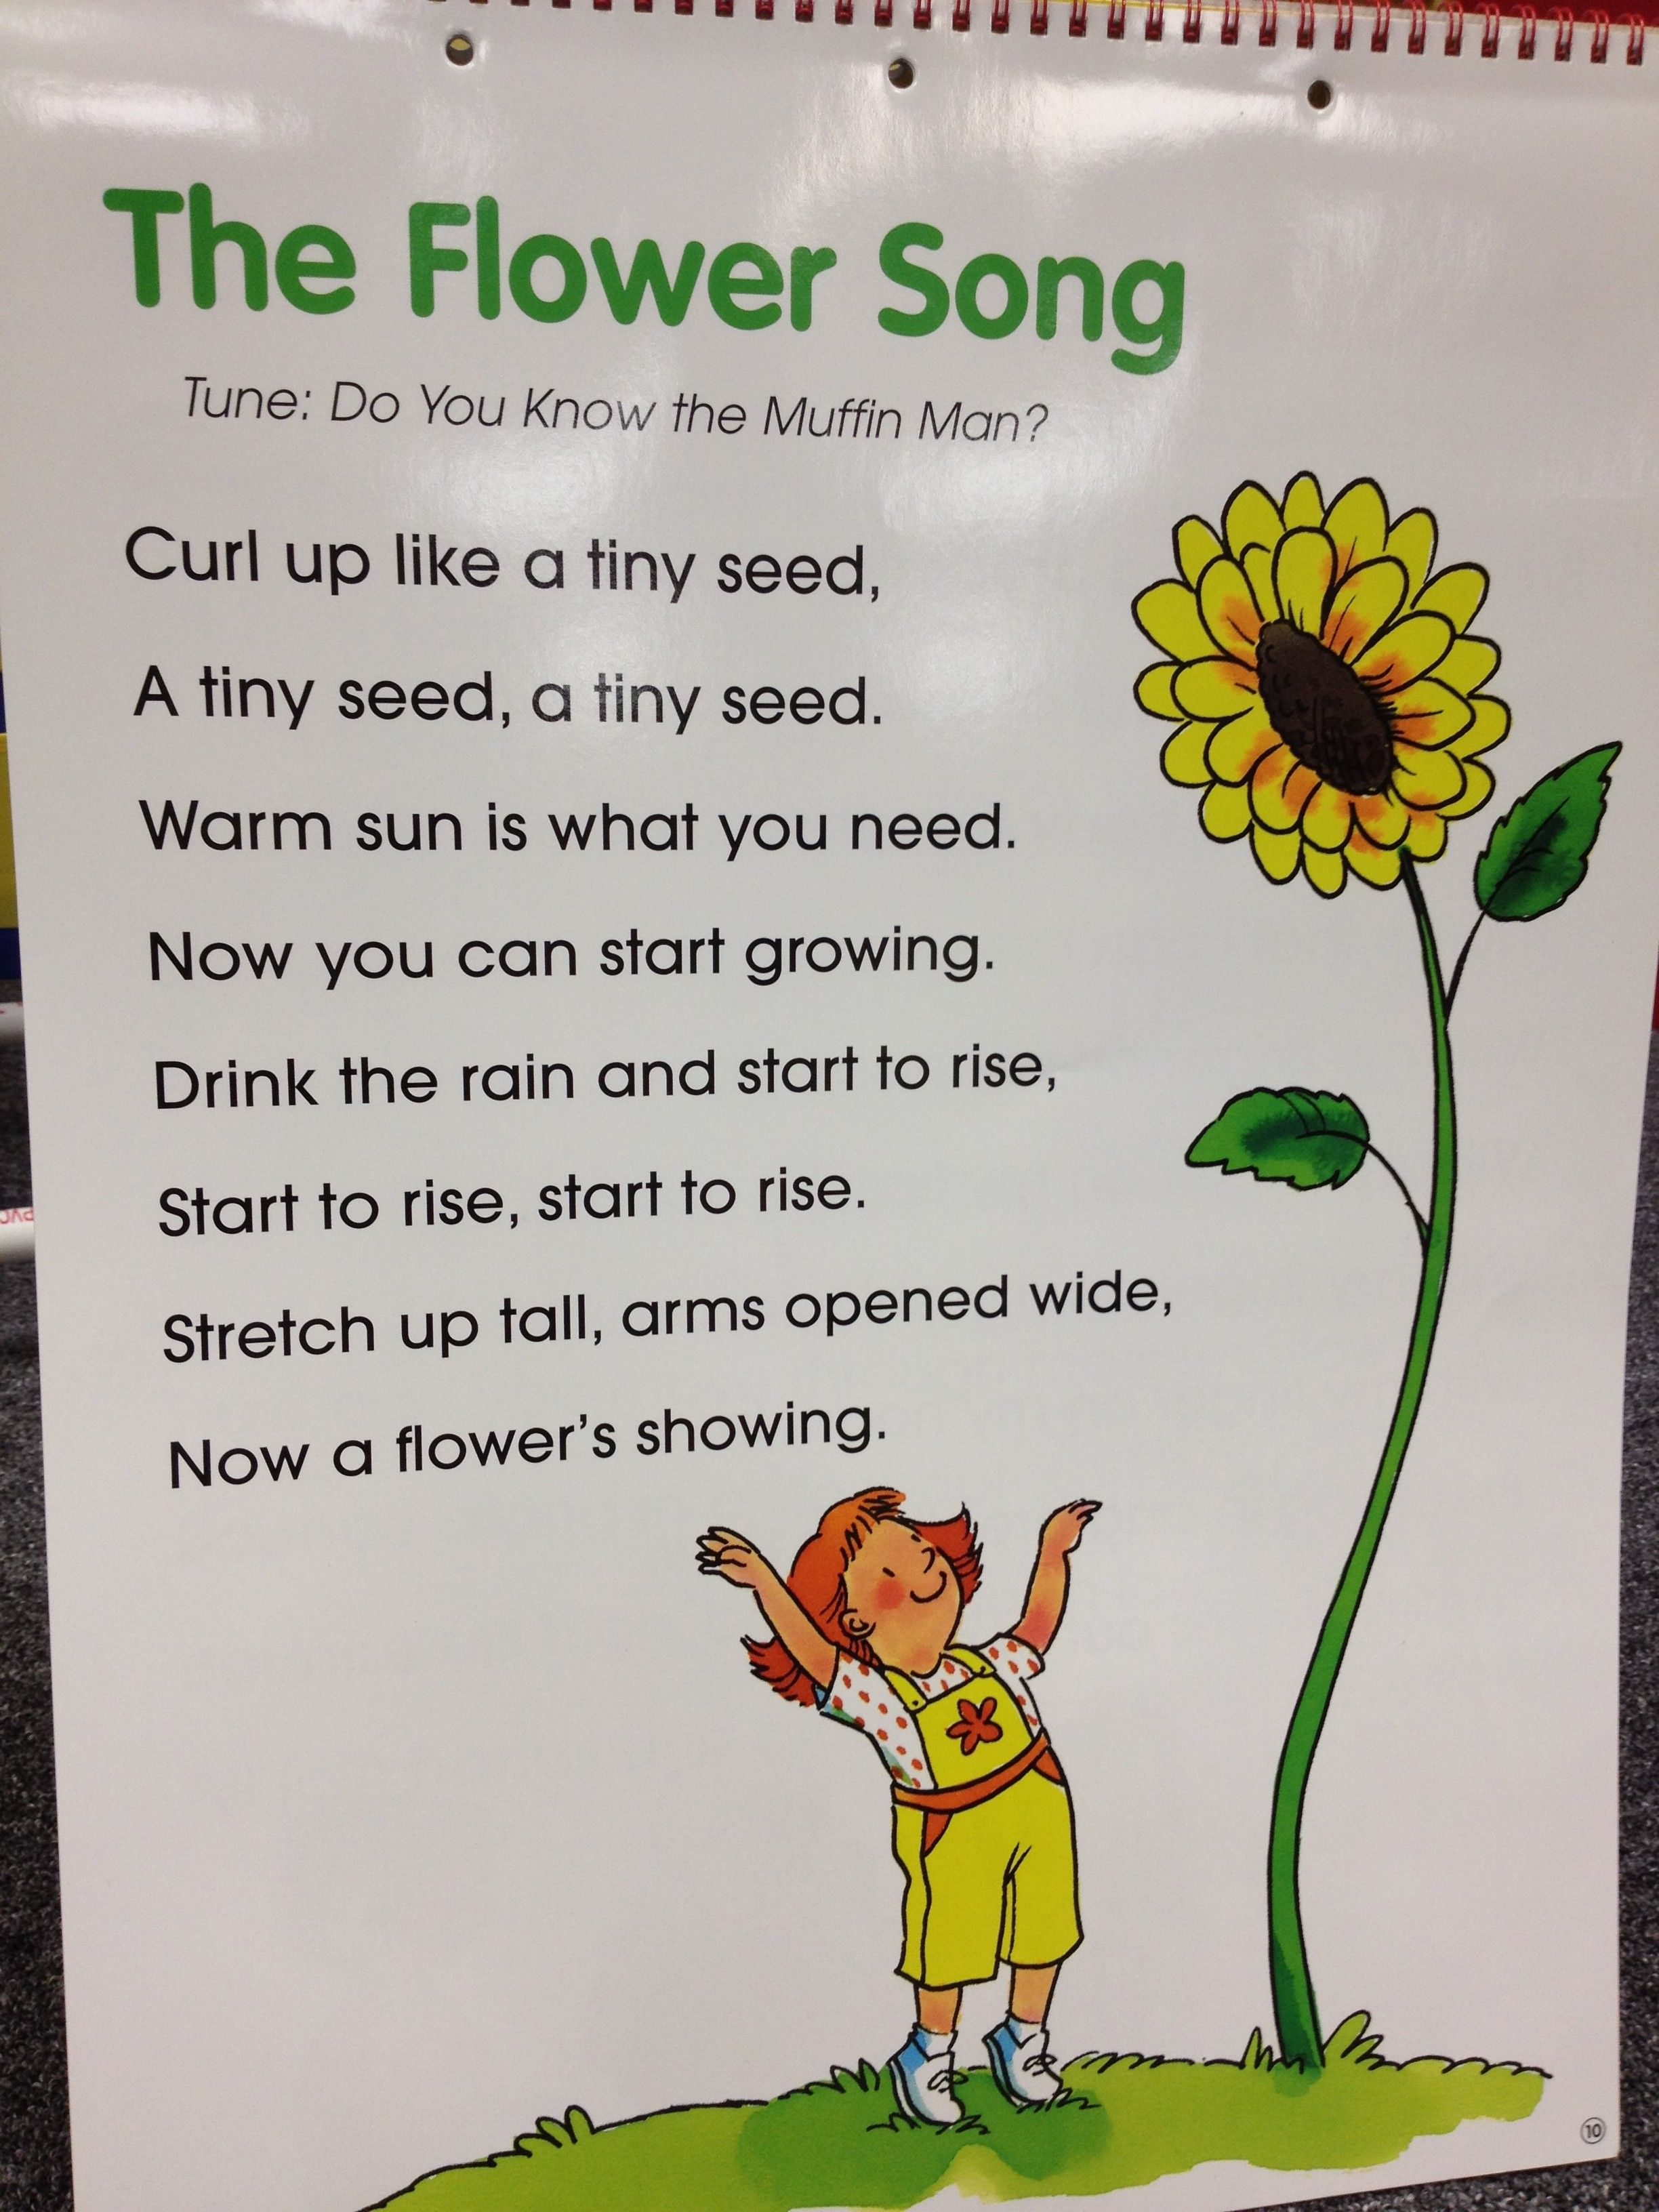 The Flower Song Science Life Cycles Pinterest Songs Rain Shower And Flower